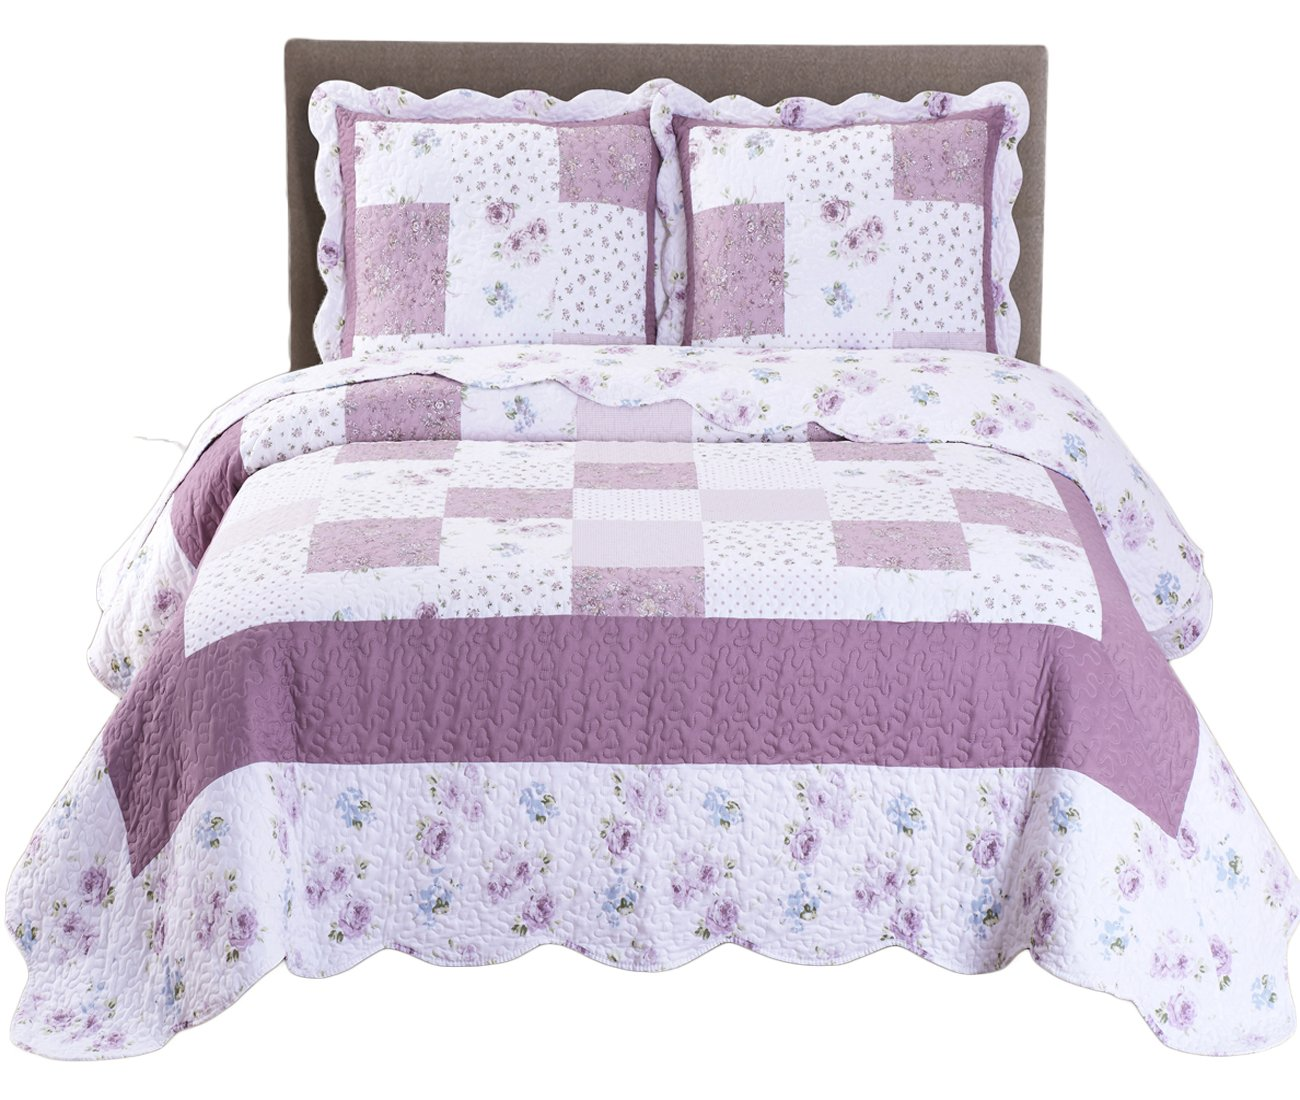 Royal Tradition Ventura Floral Printed Microfiber Oversized Twin/Twin Extra Long XL 2PC Quilt Set, Shades of Purple